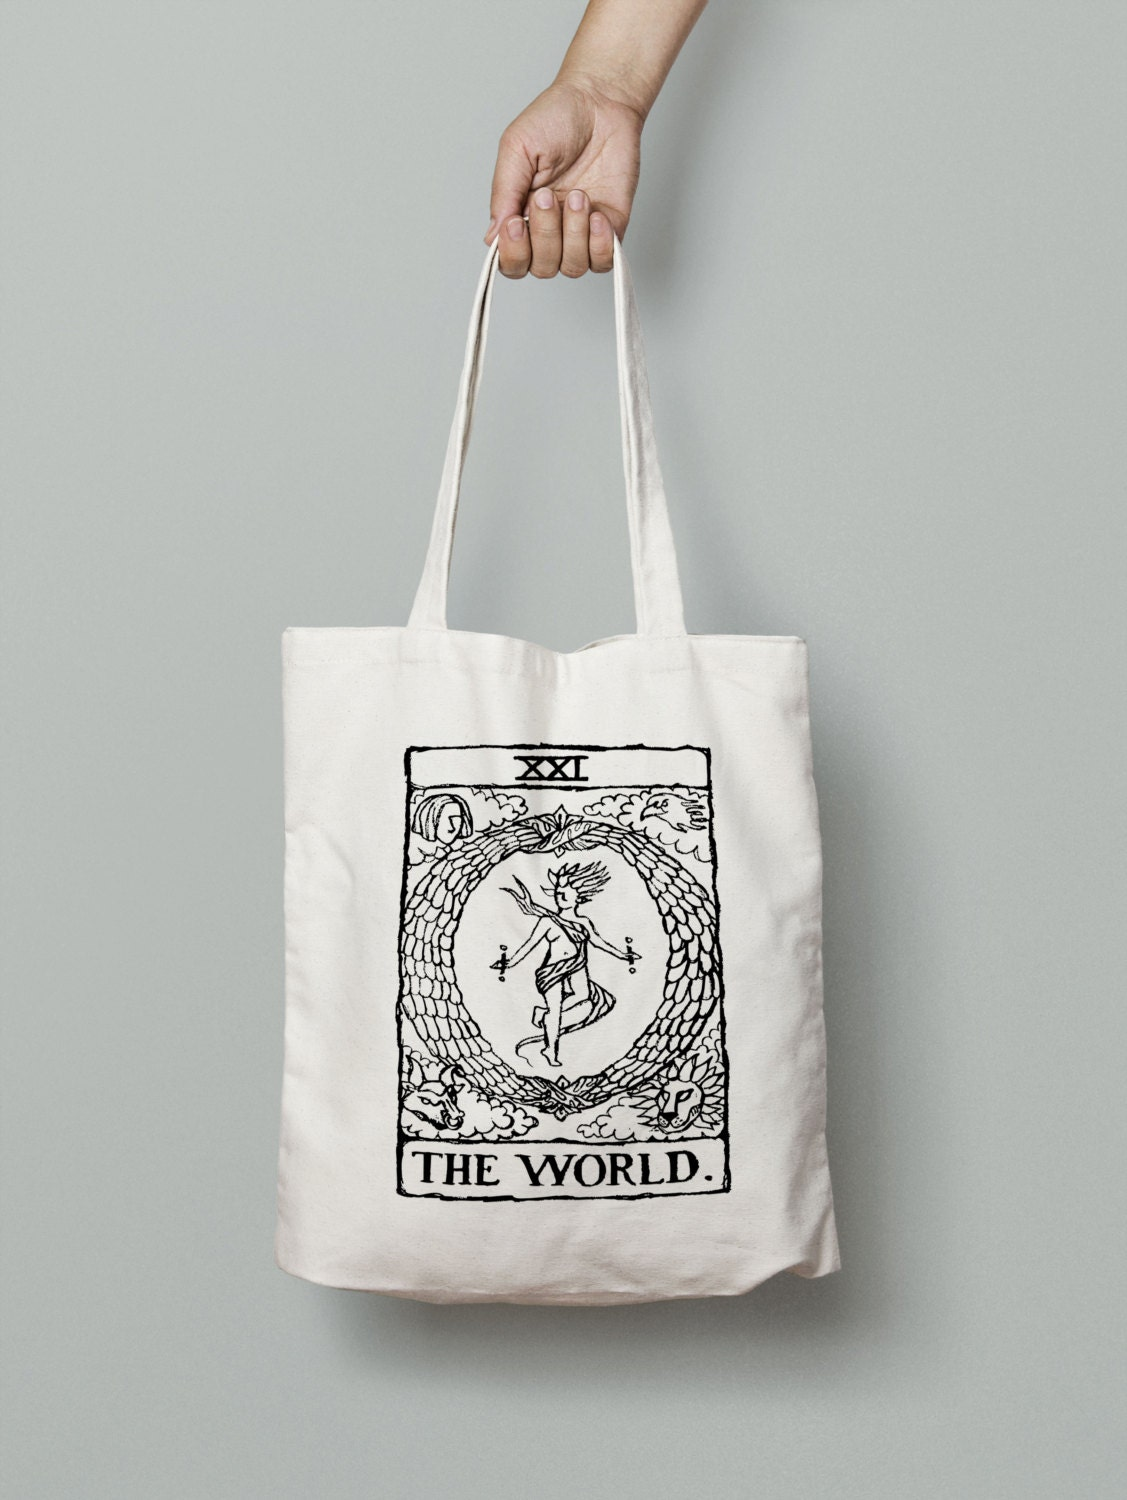 Tarot Bags Tarot Cards Cloths More: Tarot Tote Bag The World Tarot Card Tarot Card Tote Bag